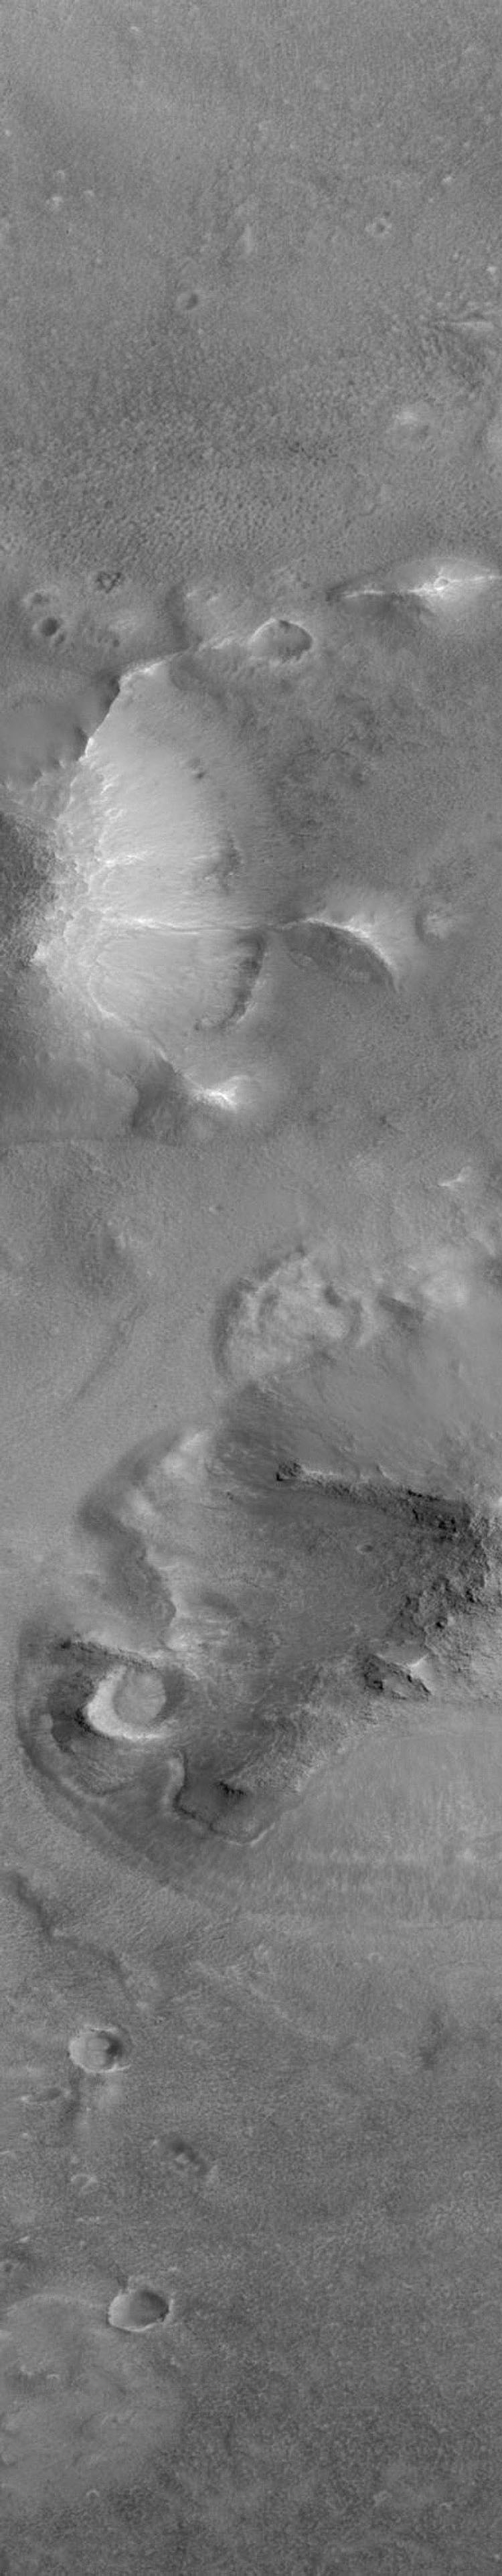 NASA's Mars Global Surveyor shows features in the Cydonia region of Mars.